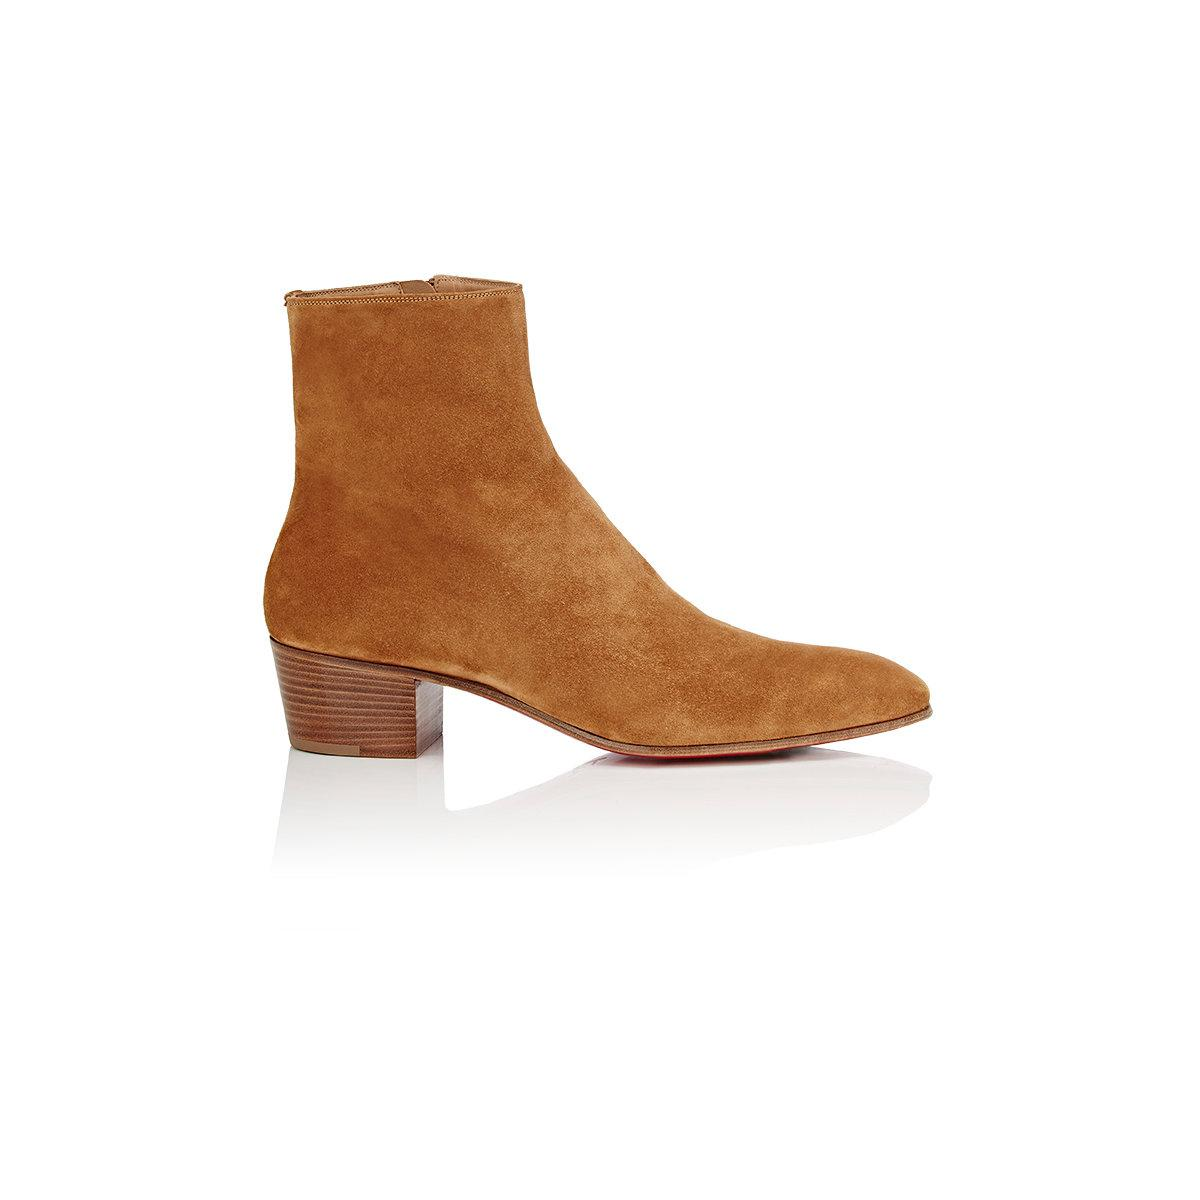 Huston suede ankle boots Christian Louboutin Lw6Le2Fc